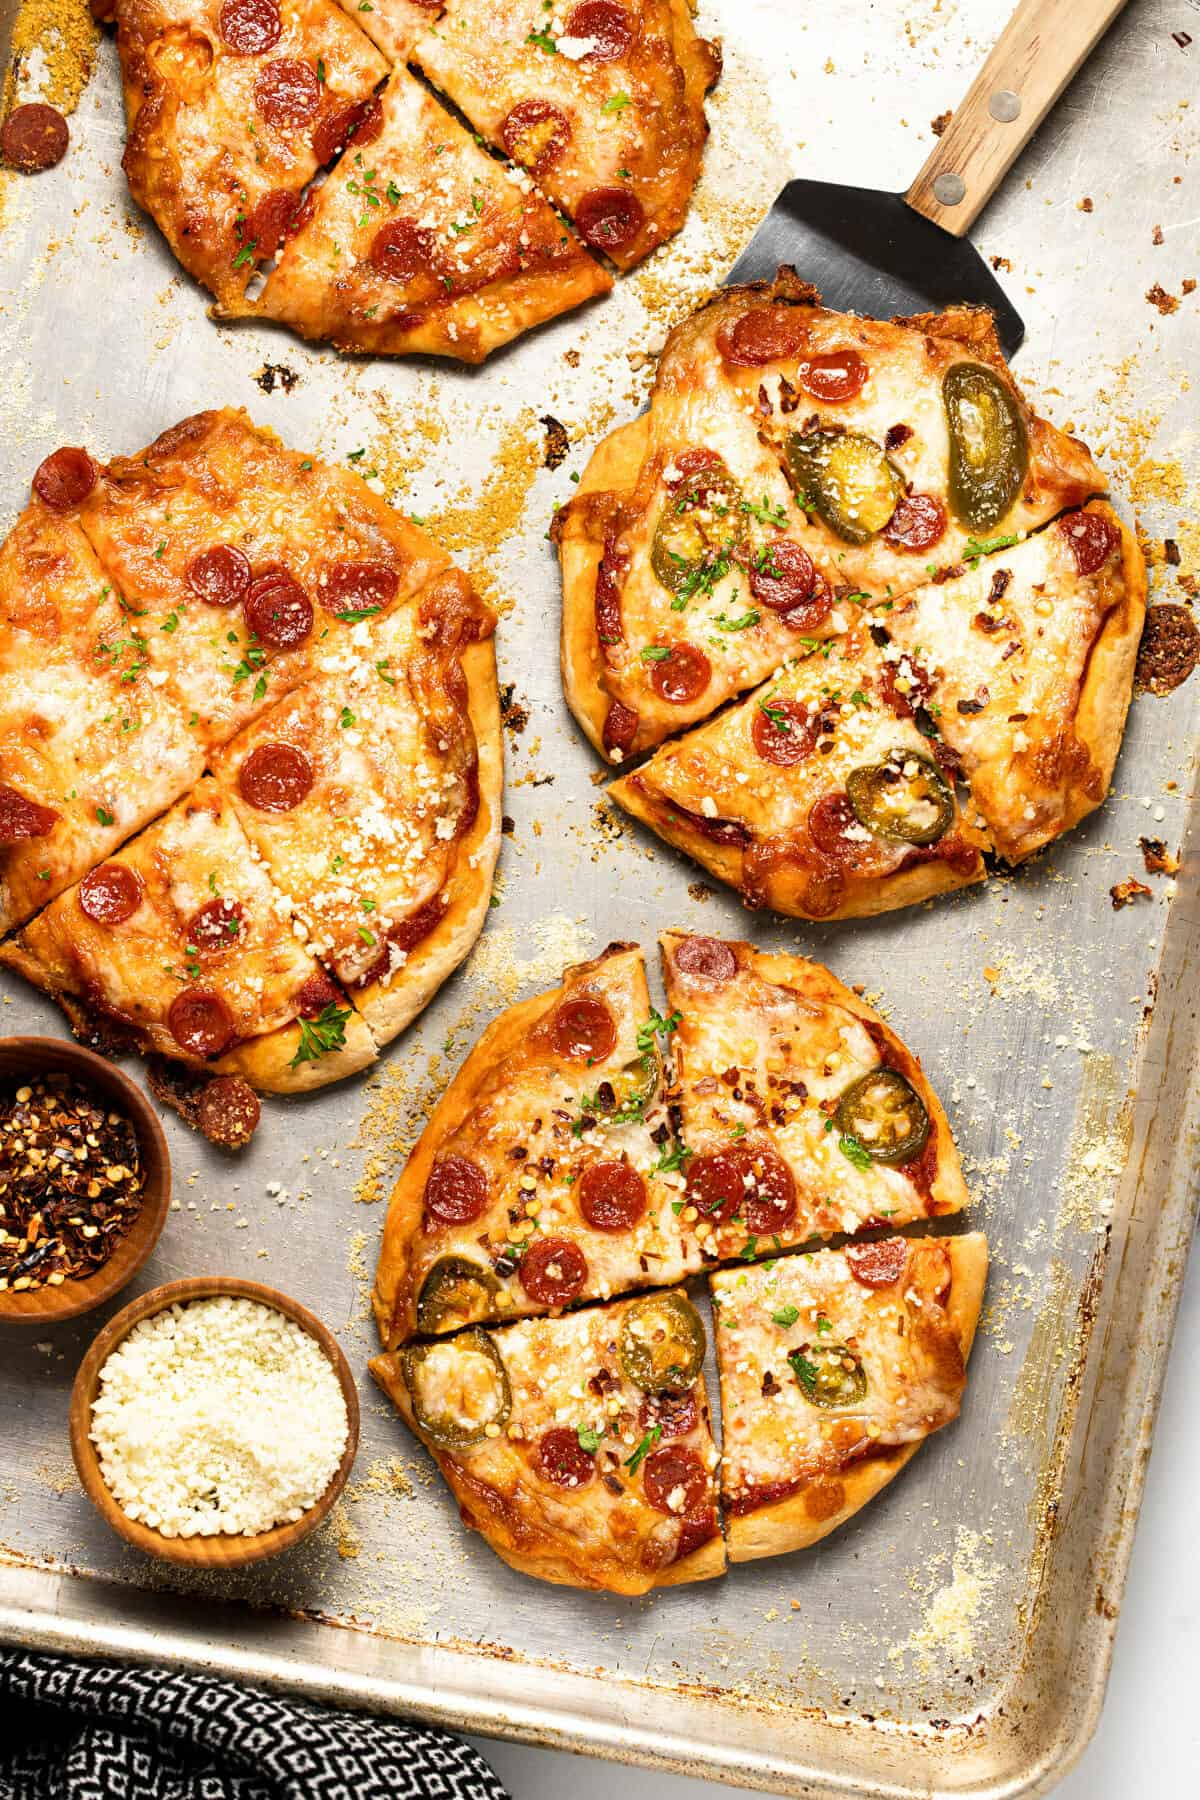 Baking sheet with homemade mini pizzas garnished with grated Parmesan cheese